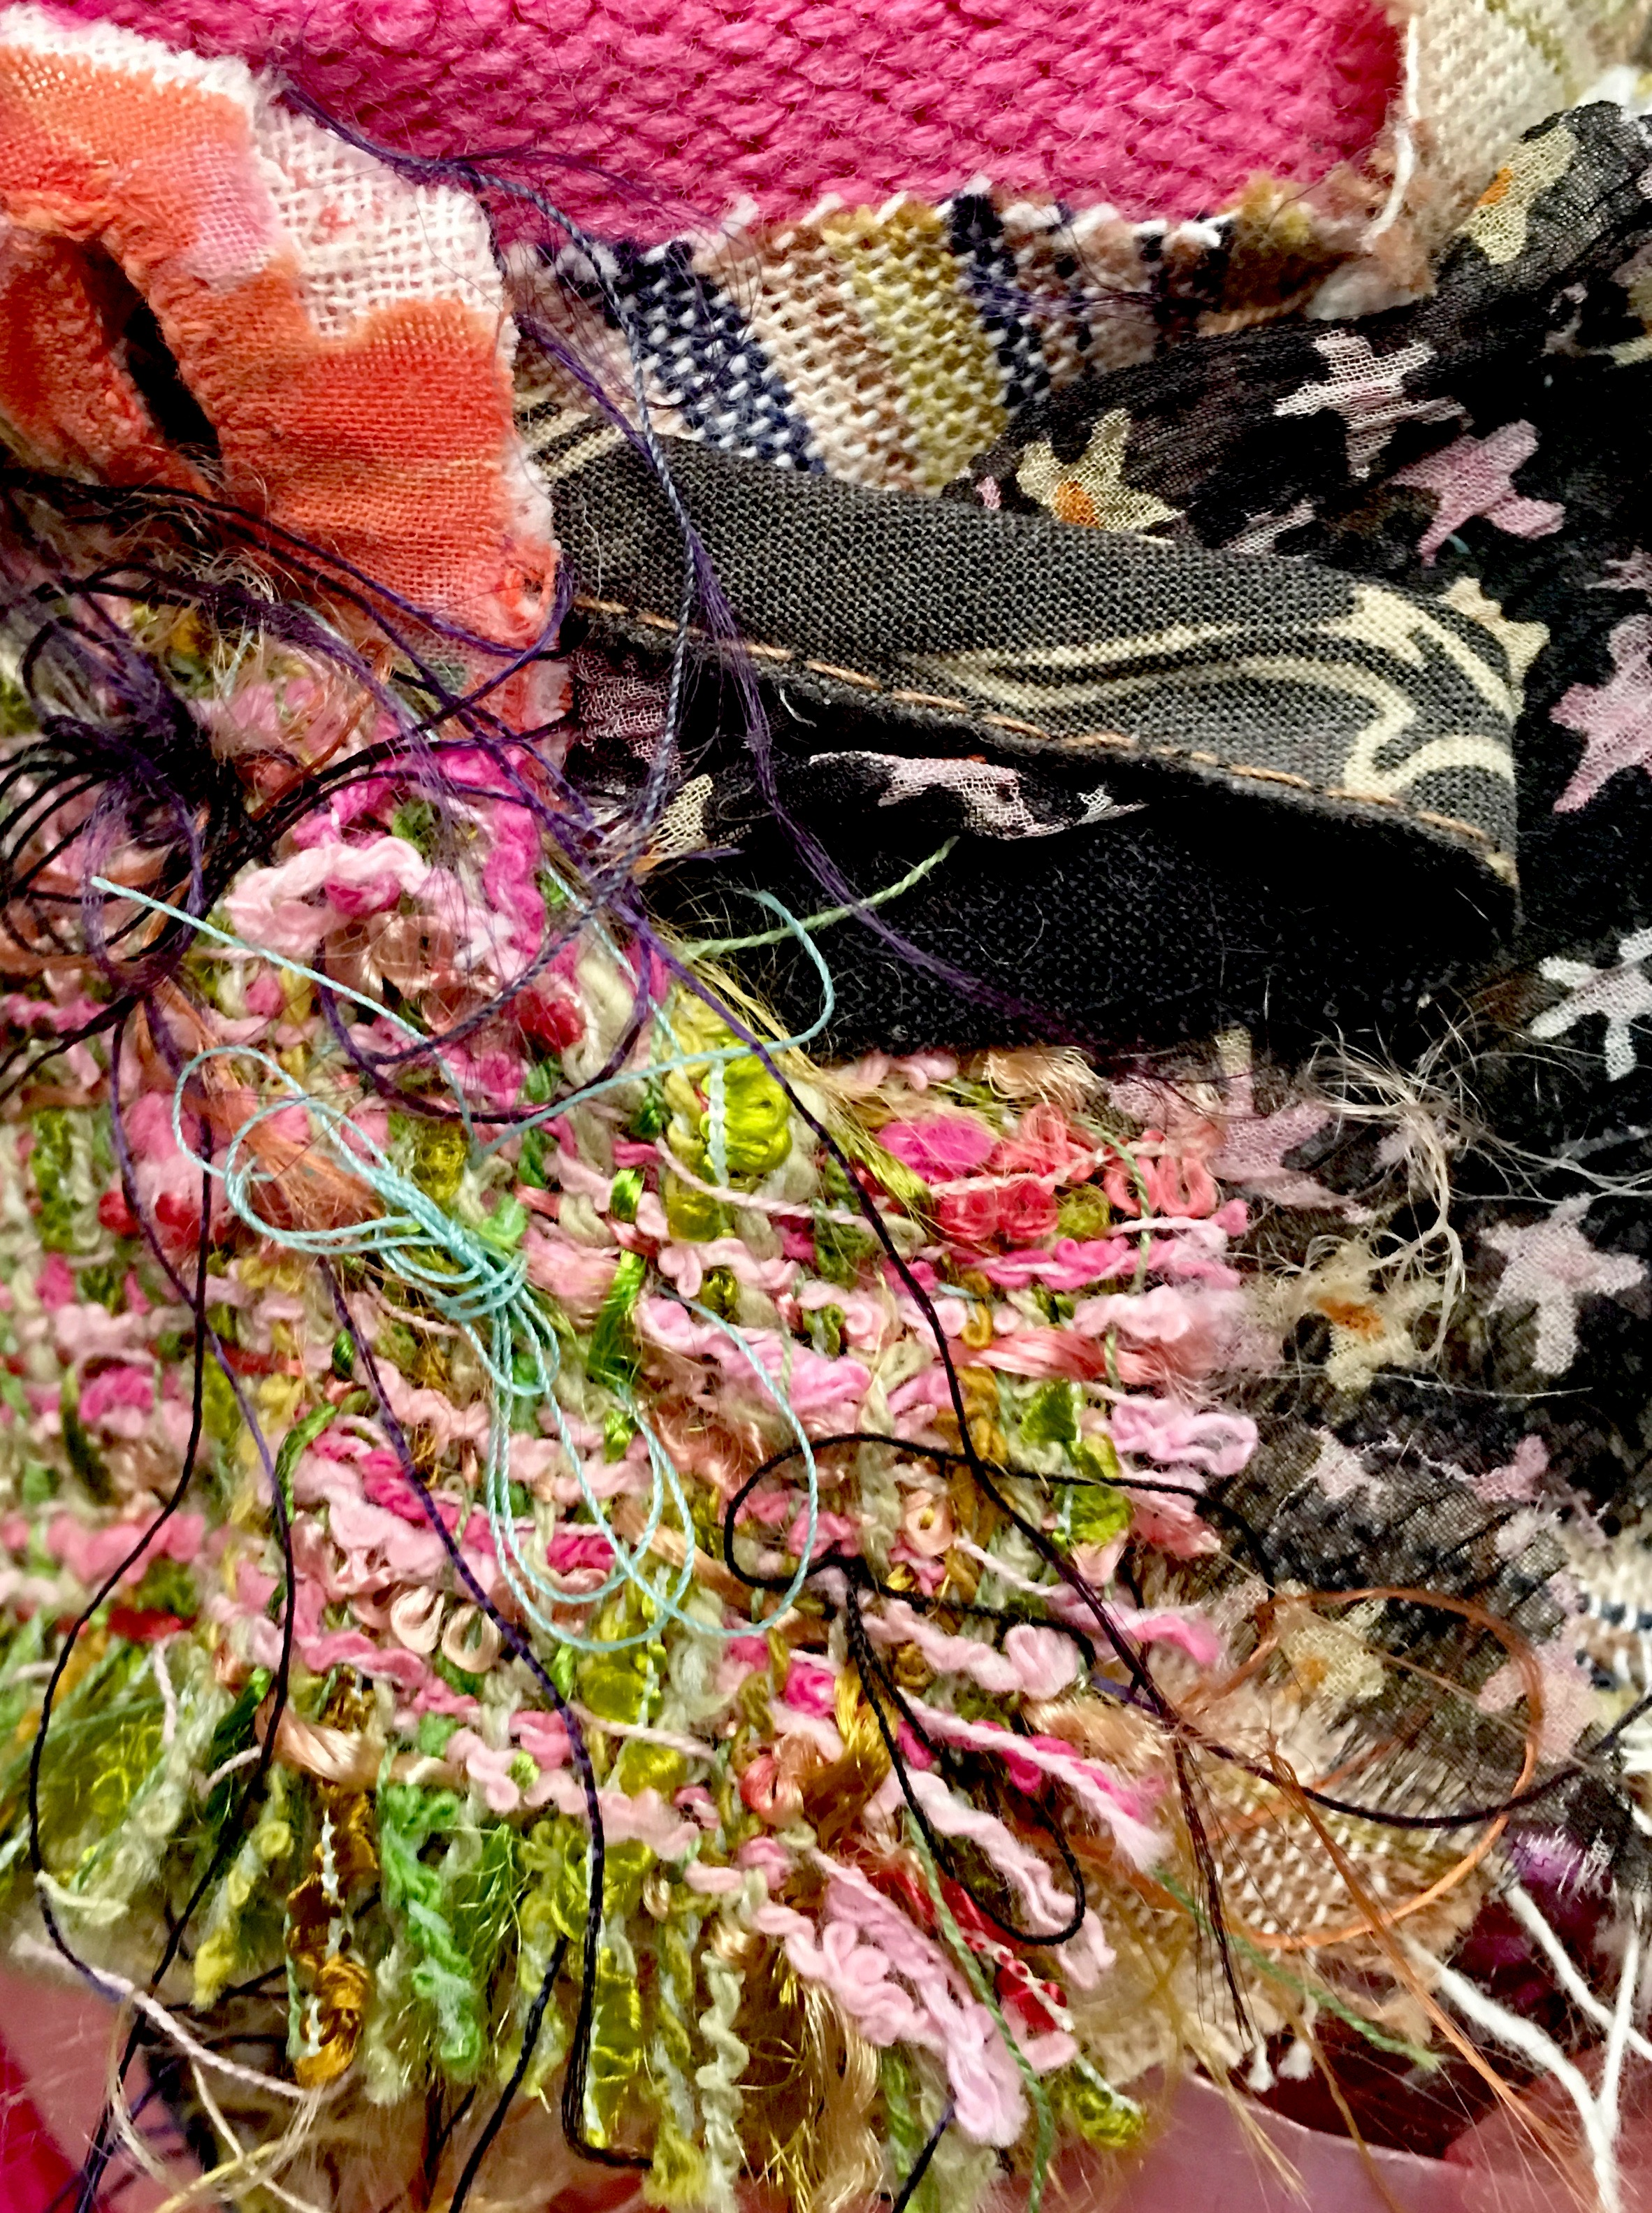 "Pink (Detail)   Japanese cellophane, textile, thread, and brillo on plastic bottle with stones that rattle. Metal base with beads and cellophane  13 x 13"" round  2015-2019"